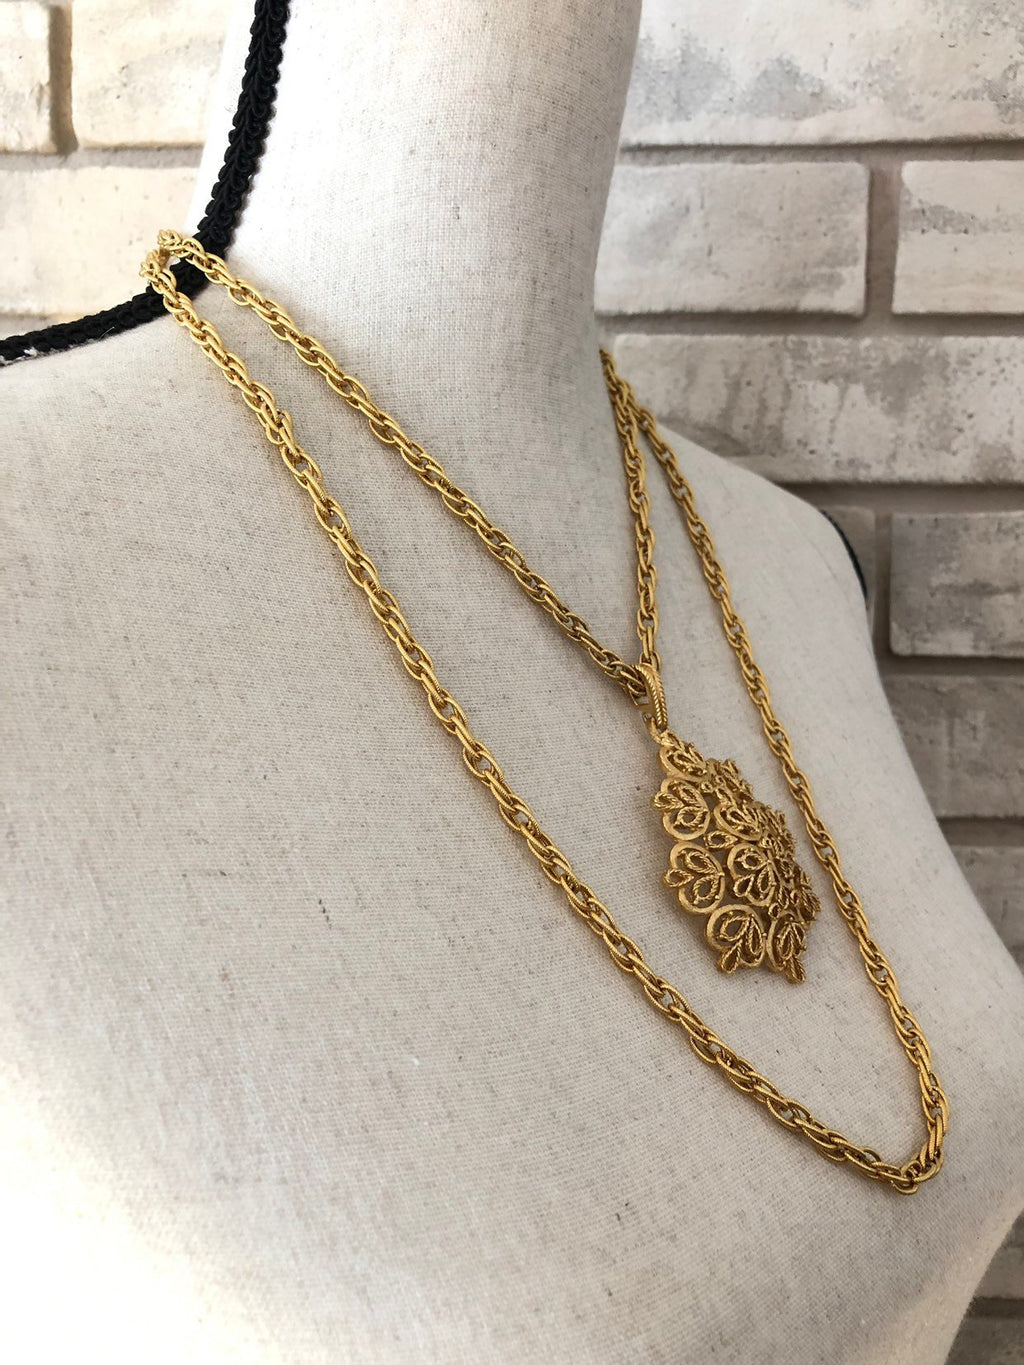 update alt-text with template Gold Crown Trifari Vintage Layered Long Chain Pendant-Necklaces & Pendants-Trifari-[trending designer jewelry]-[trifari jewelry]-[Sustainable Fashion]